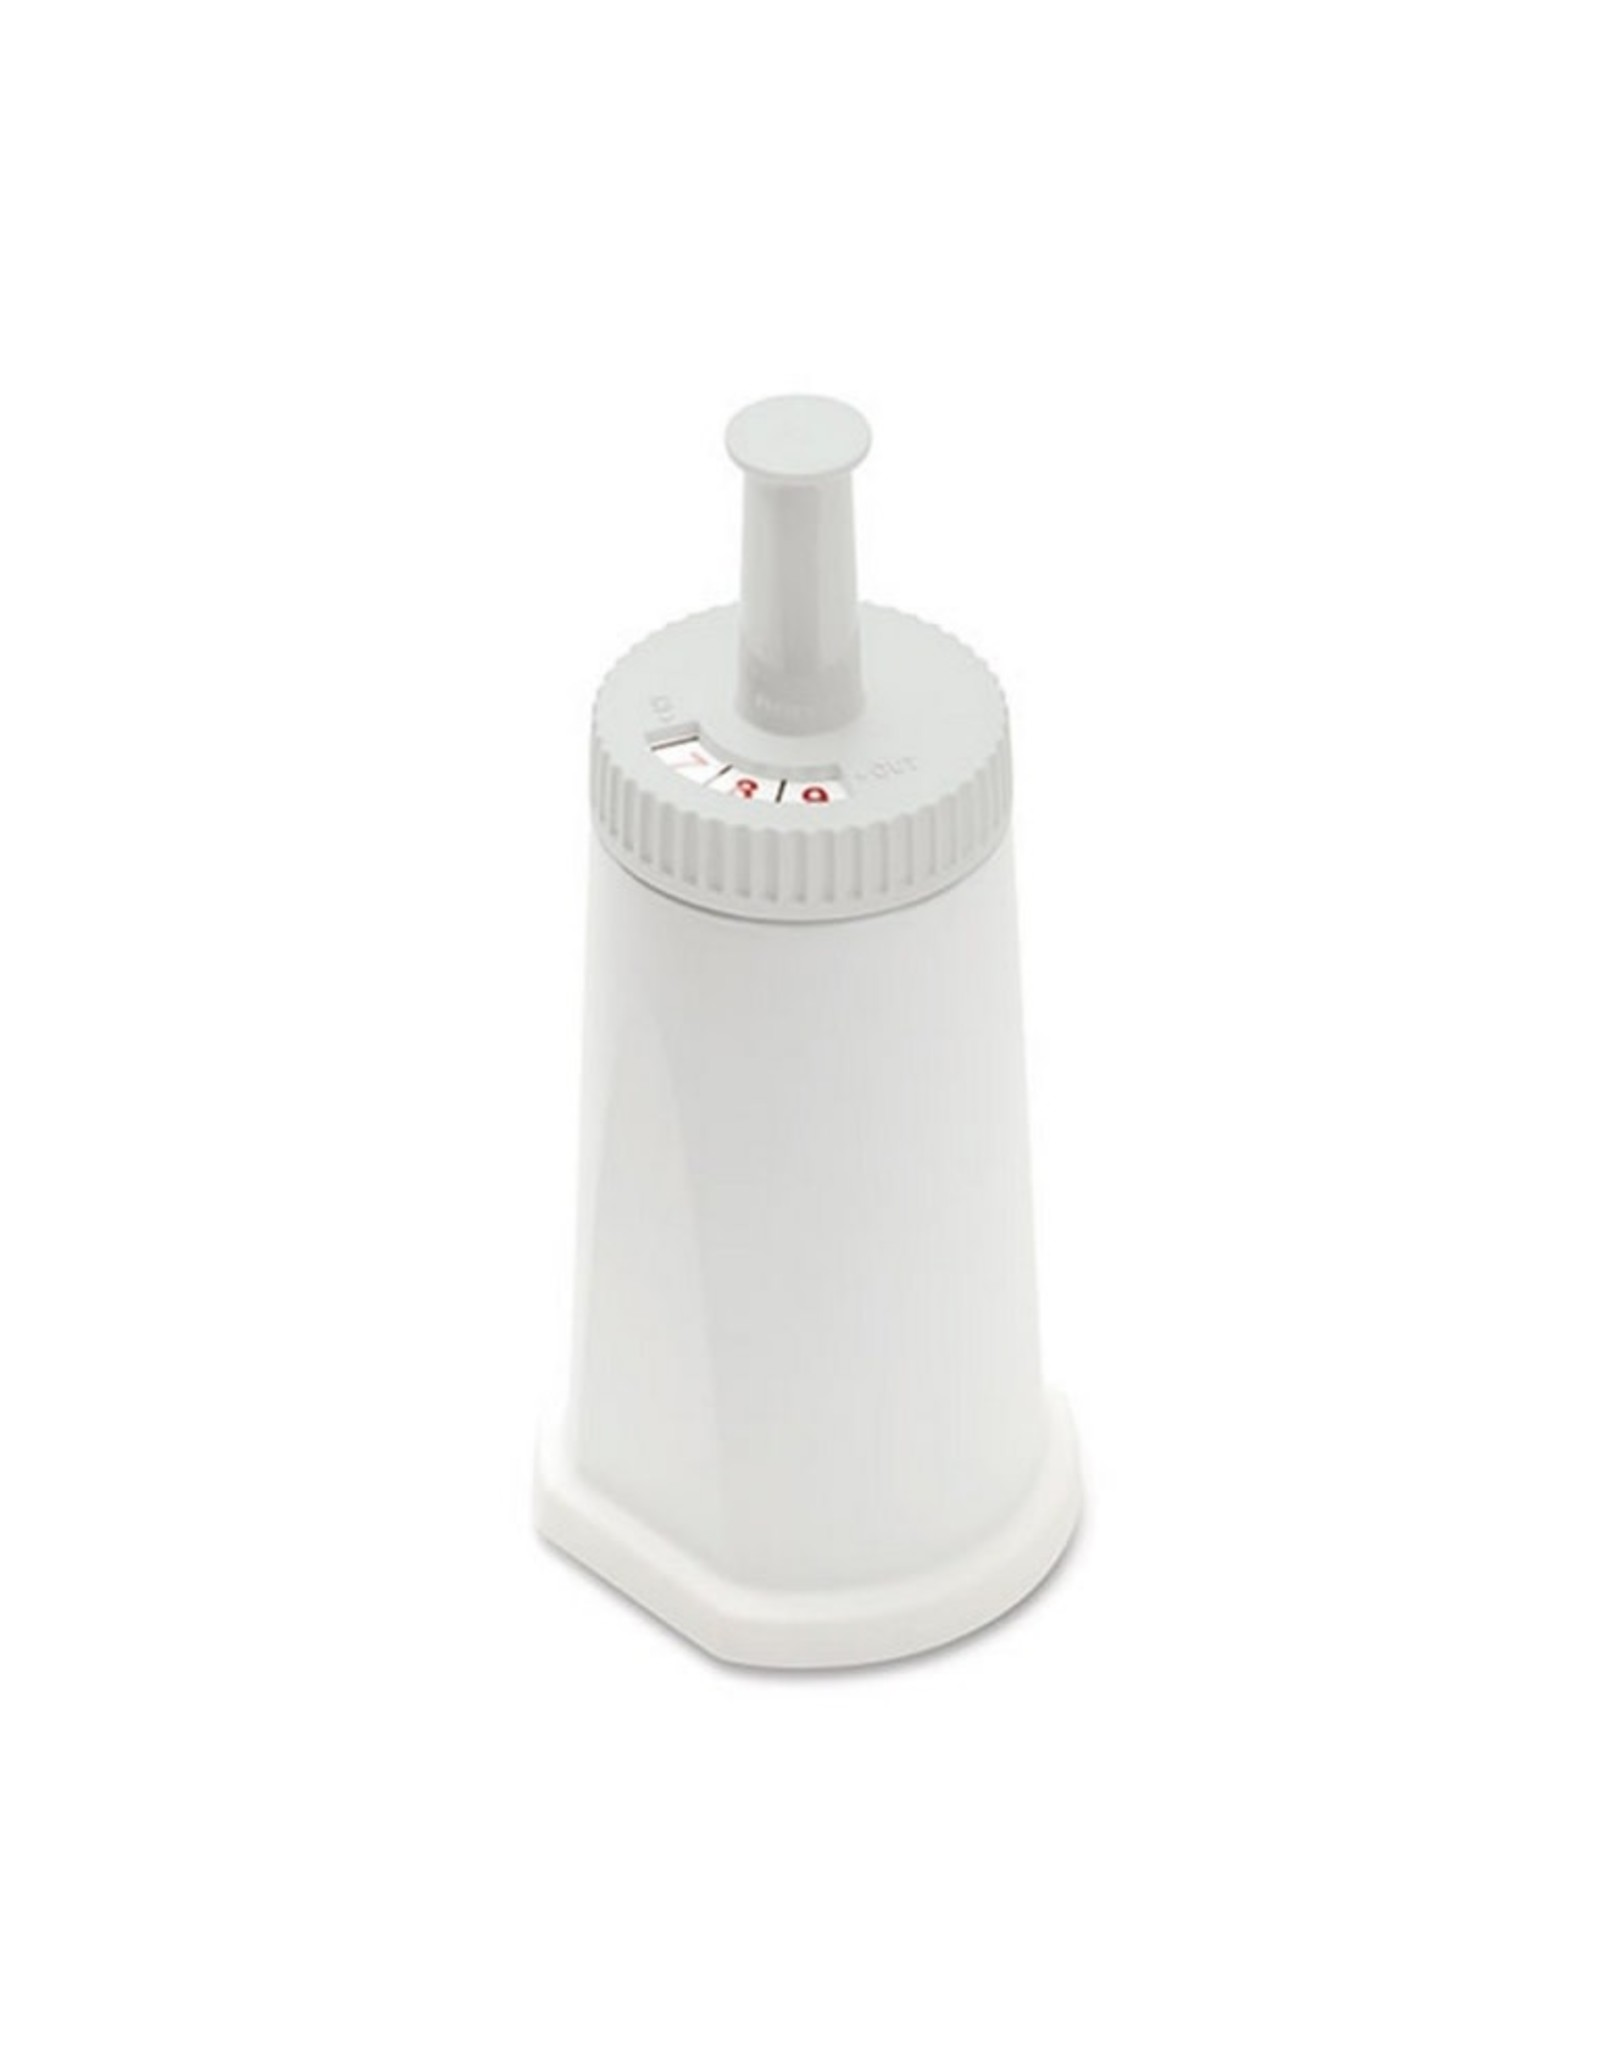 Breville Breville ClaroSwiss Water Filter - BES008